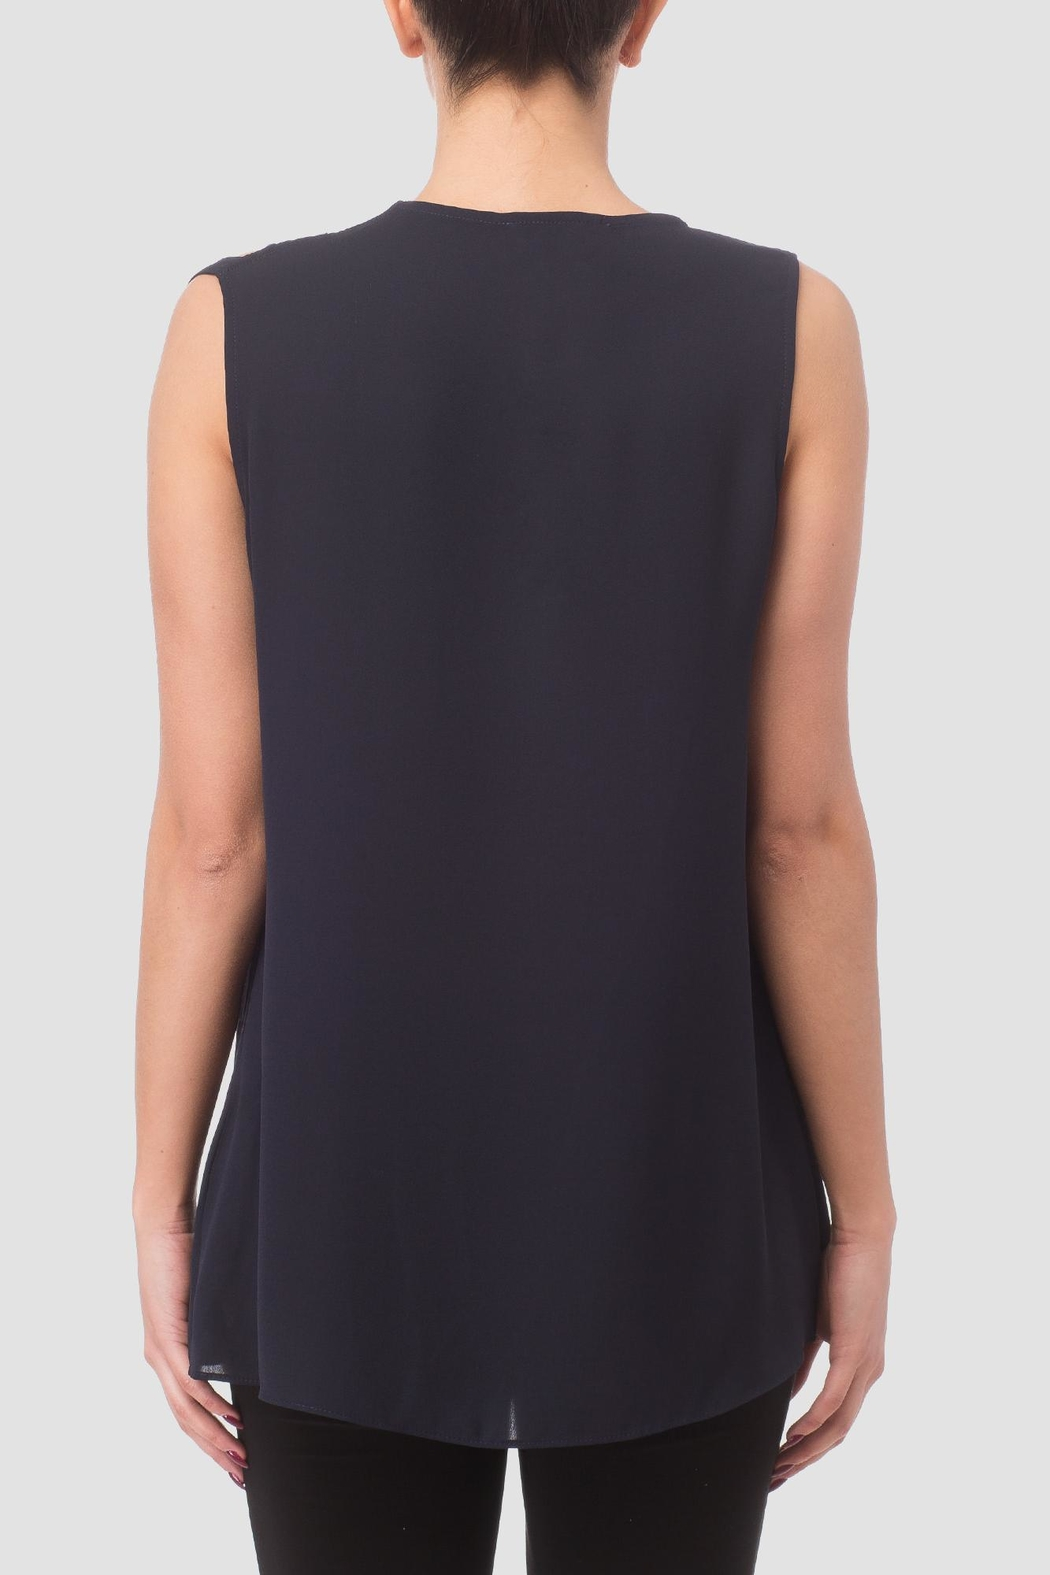 Joseph Ribkoff Sleeve Less Top - Side Cropped Image